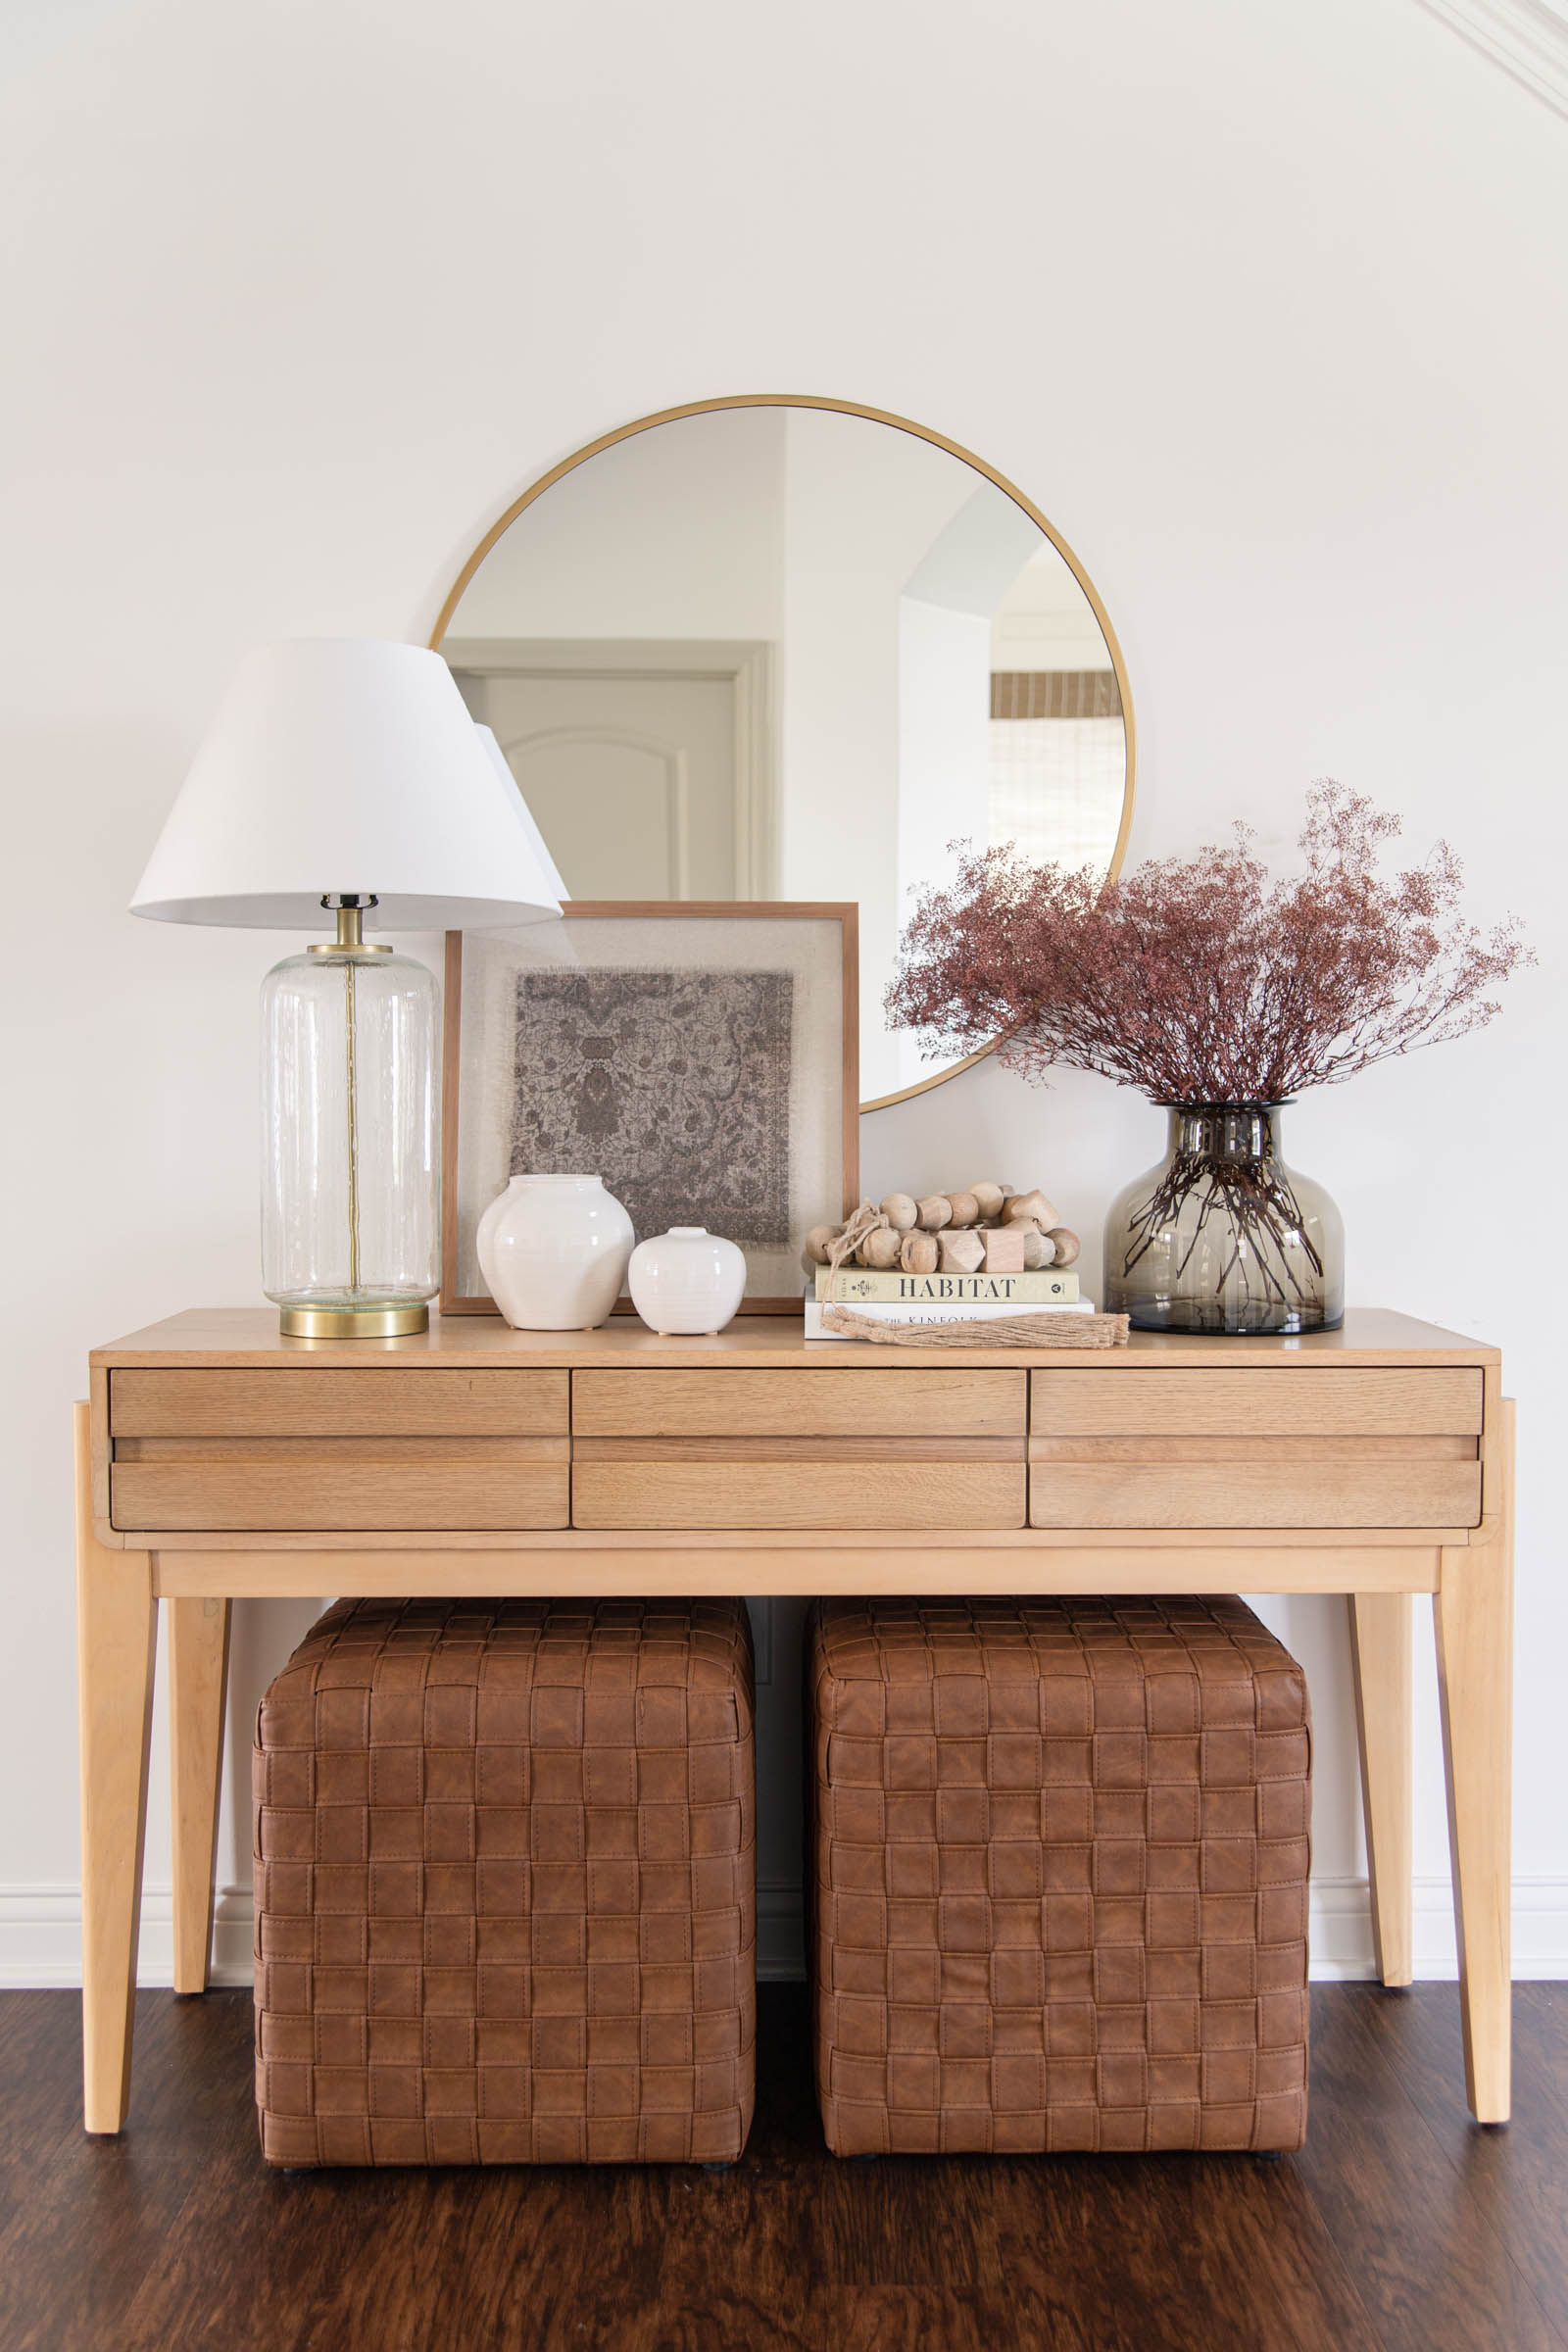 Cozy Aesthetic Fall Home Decor Finds | entryway console, Harriman wooden console table, faux leather woven cube, smoked glass vase Studio McGee, mauve dried florals